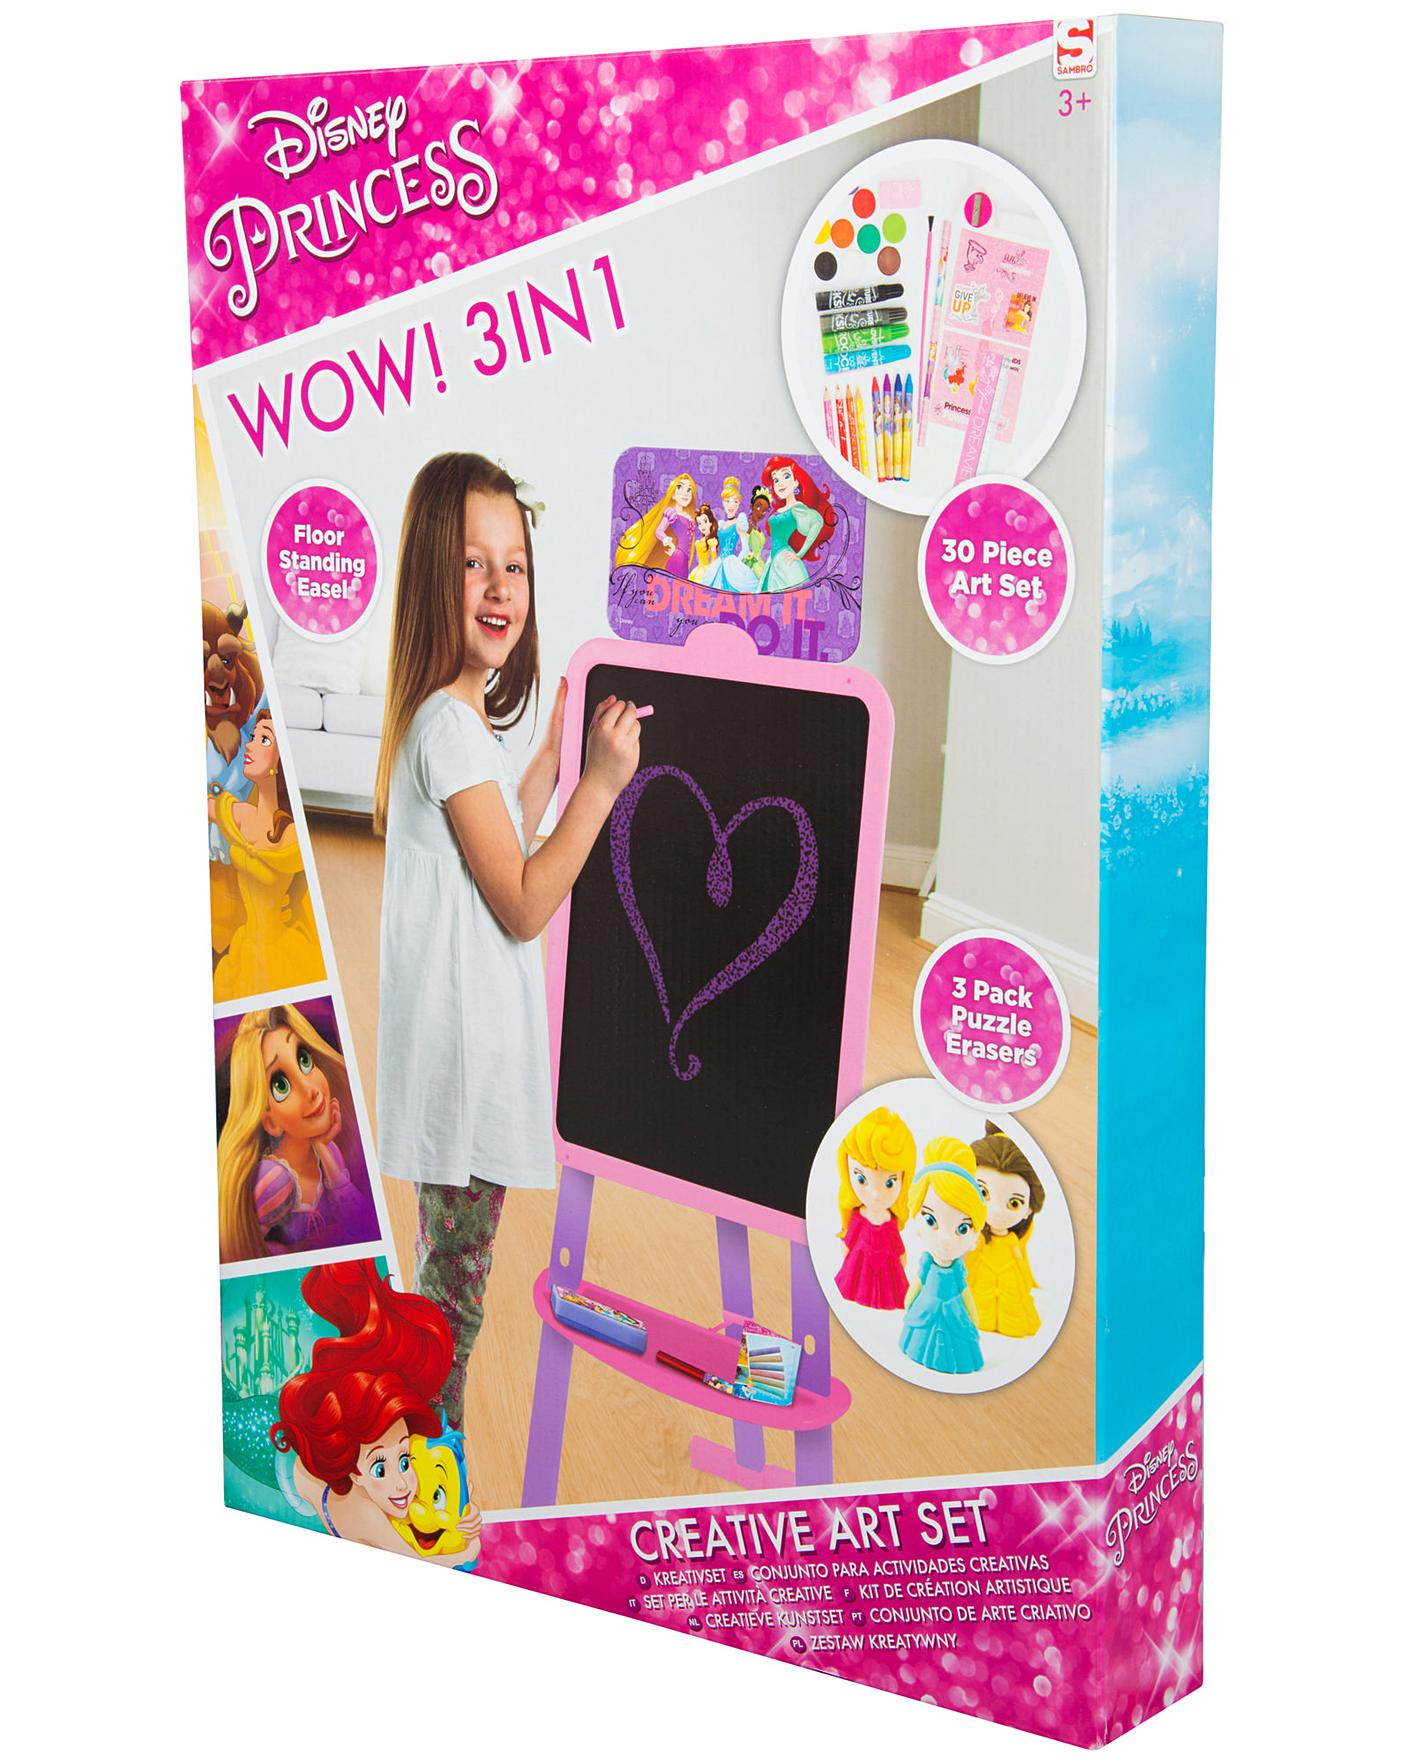 CREATIVE ART SET DISNEY PRINCESS FLOOR STANDING EASEL